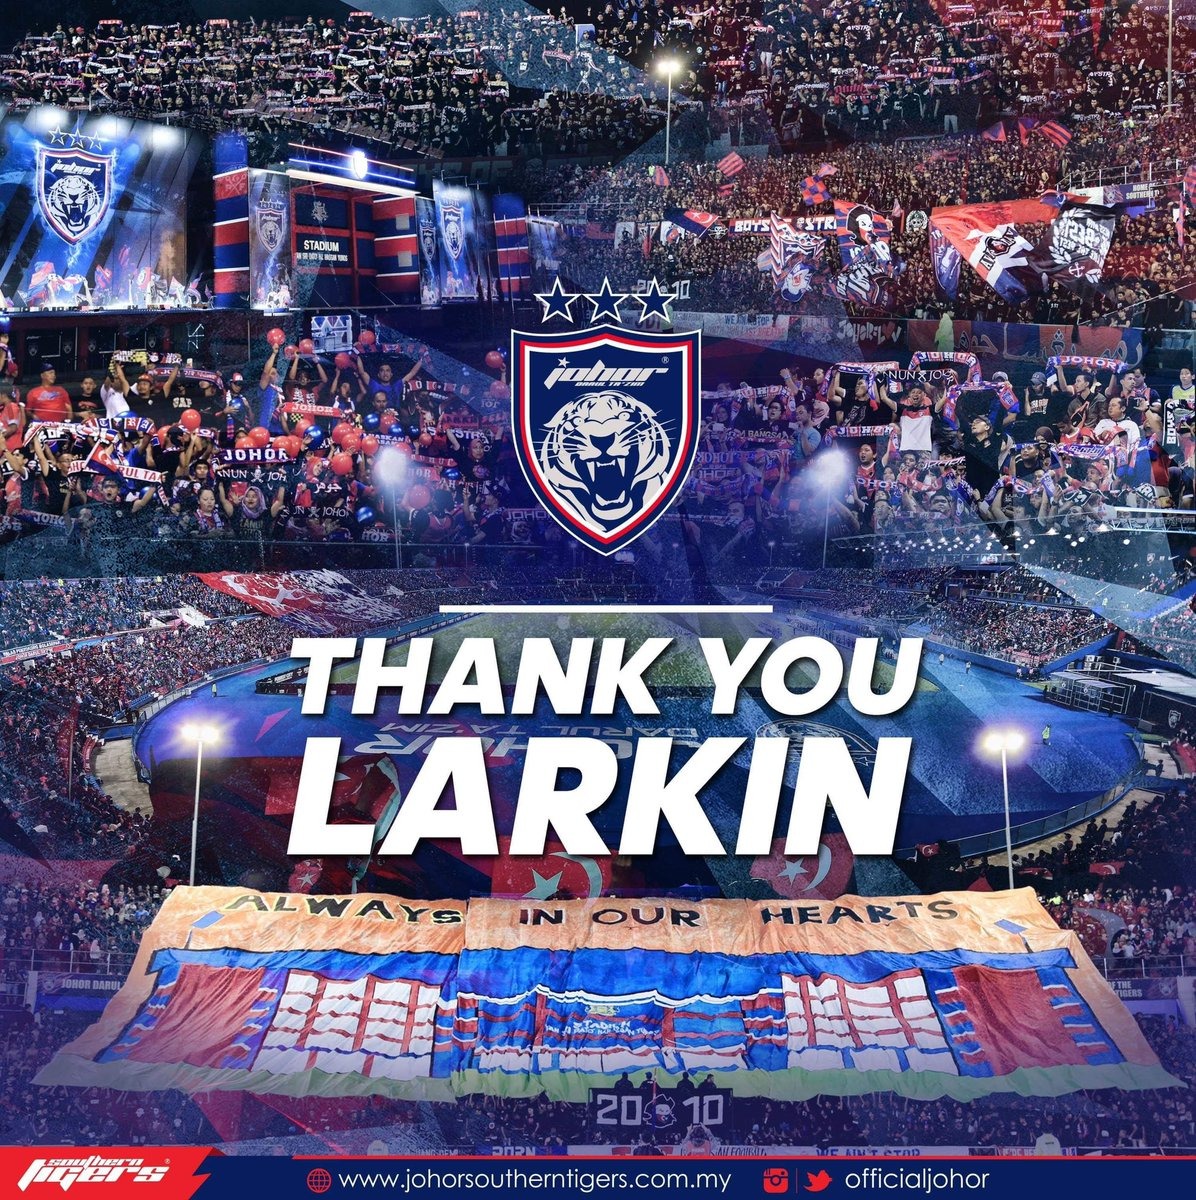 THANK YOU FOR THE MEMORIES, LARKIN!   What a journey it has been since 2013. - 13 trophies - 75-match unbeaten home league run - 6 league campaigns without defeat - Electrifying atmosphere  Luaskan Kuasamu Johor! <br>http://pic.twitter.com/3Bn5BvKyNT